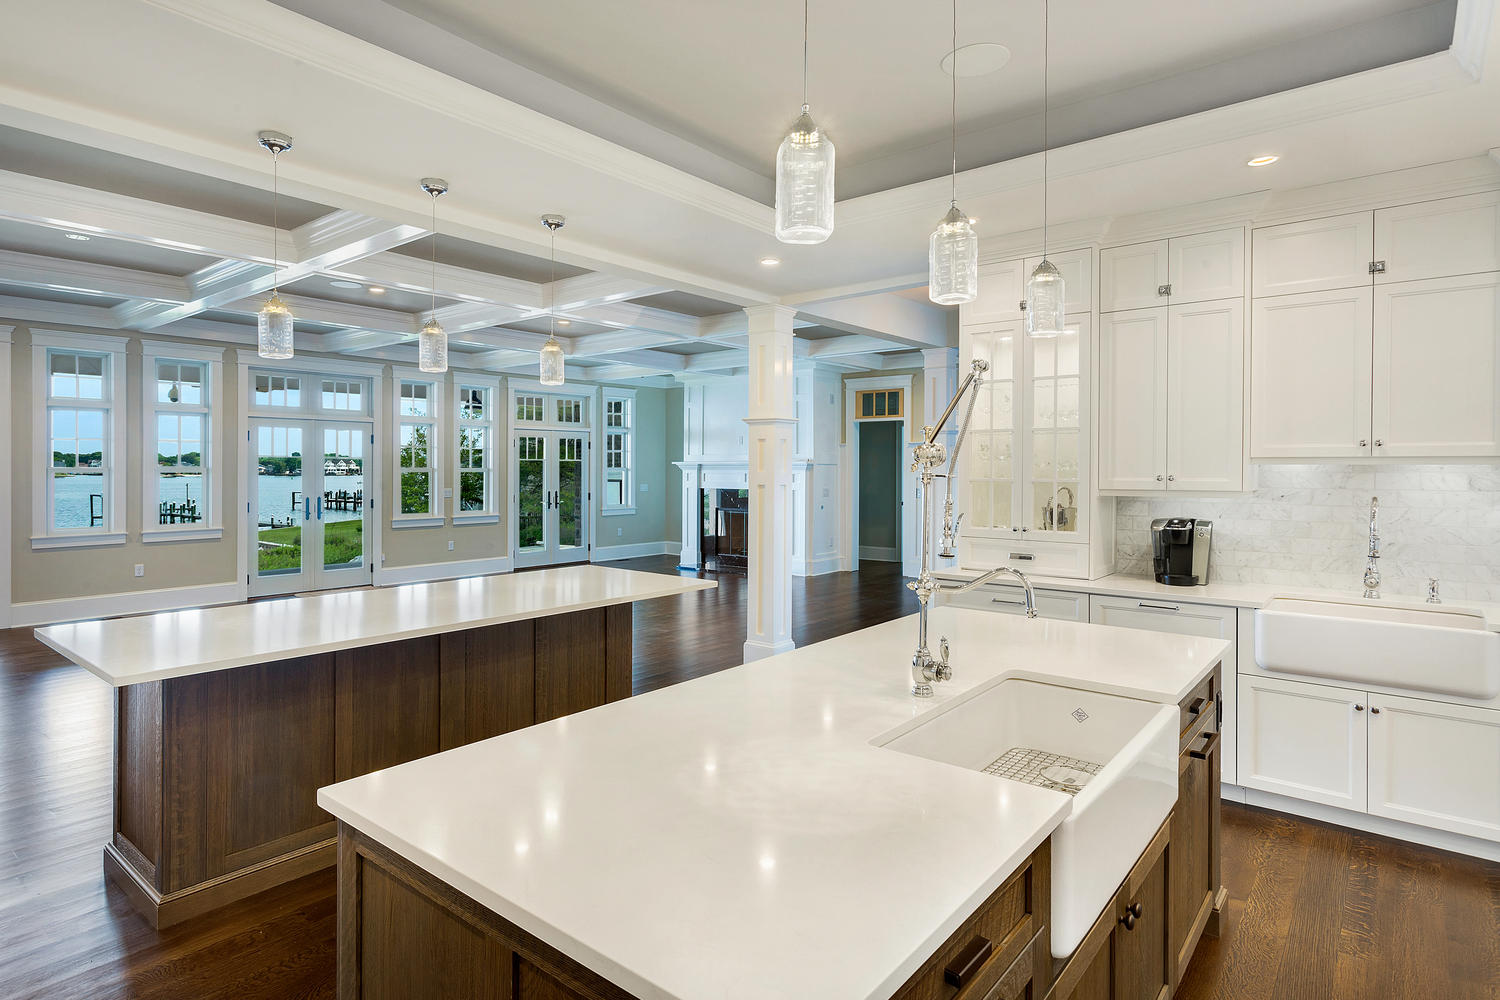 Kitchen Cabinets South Jersey Coastal Dream Kitchen Brick New Jersey By Design Line Kitchens